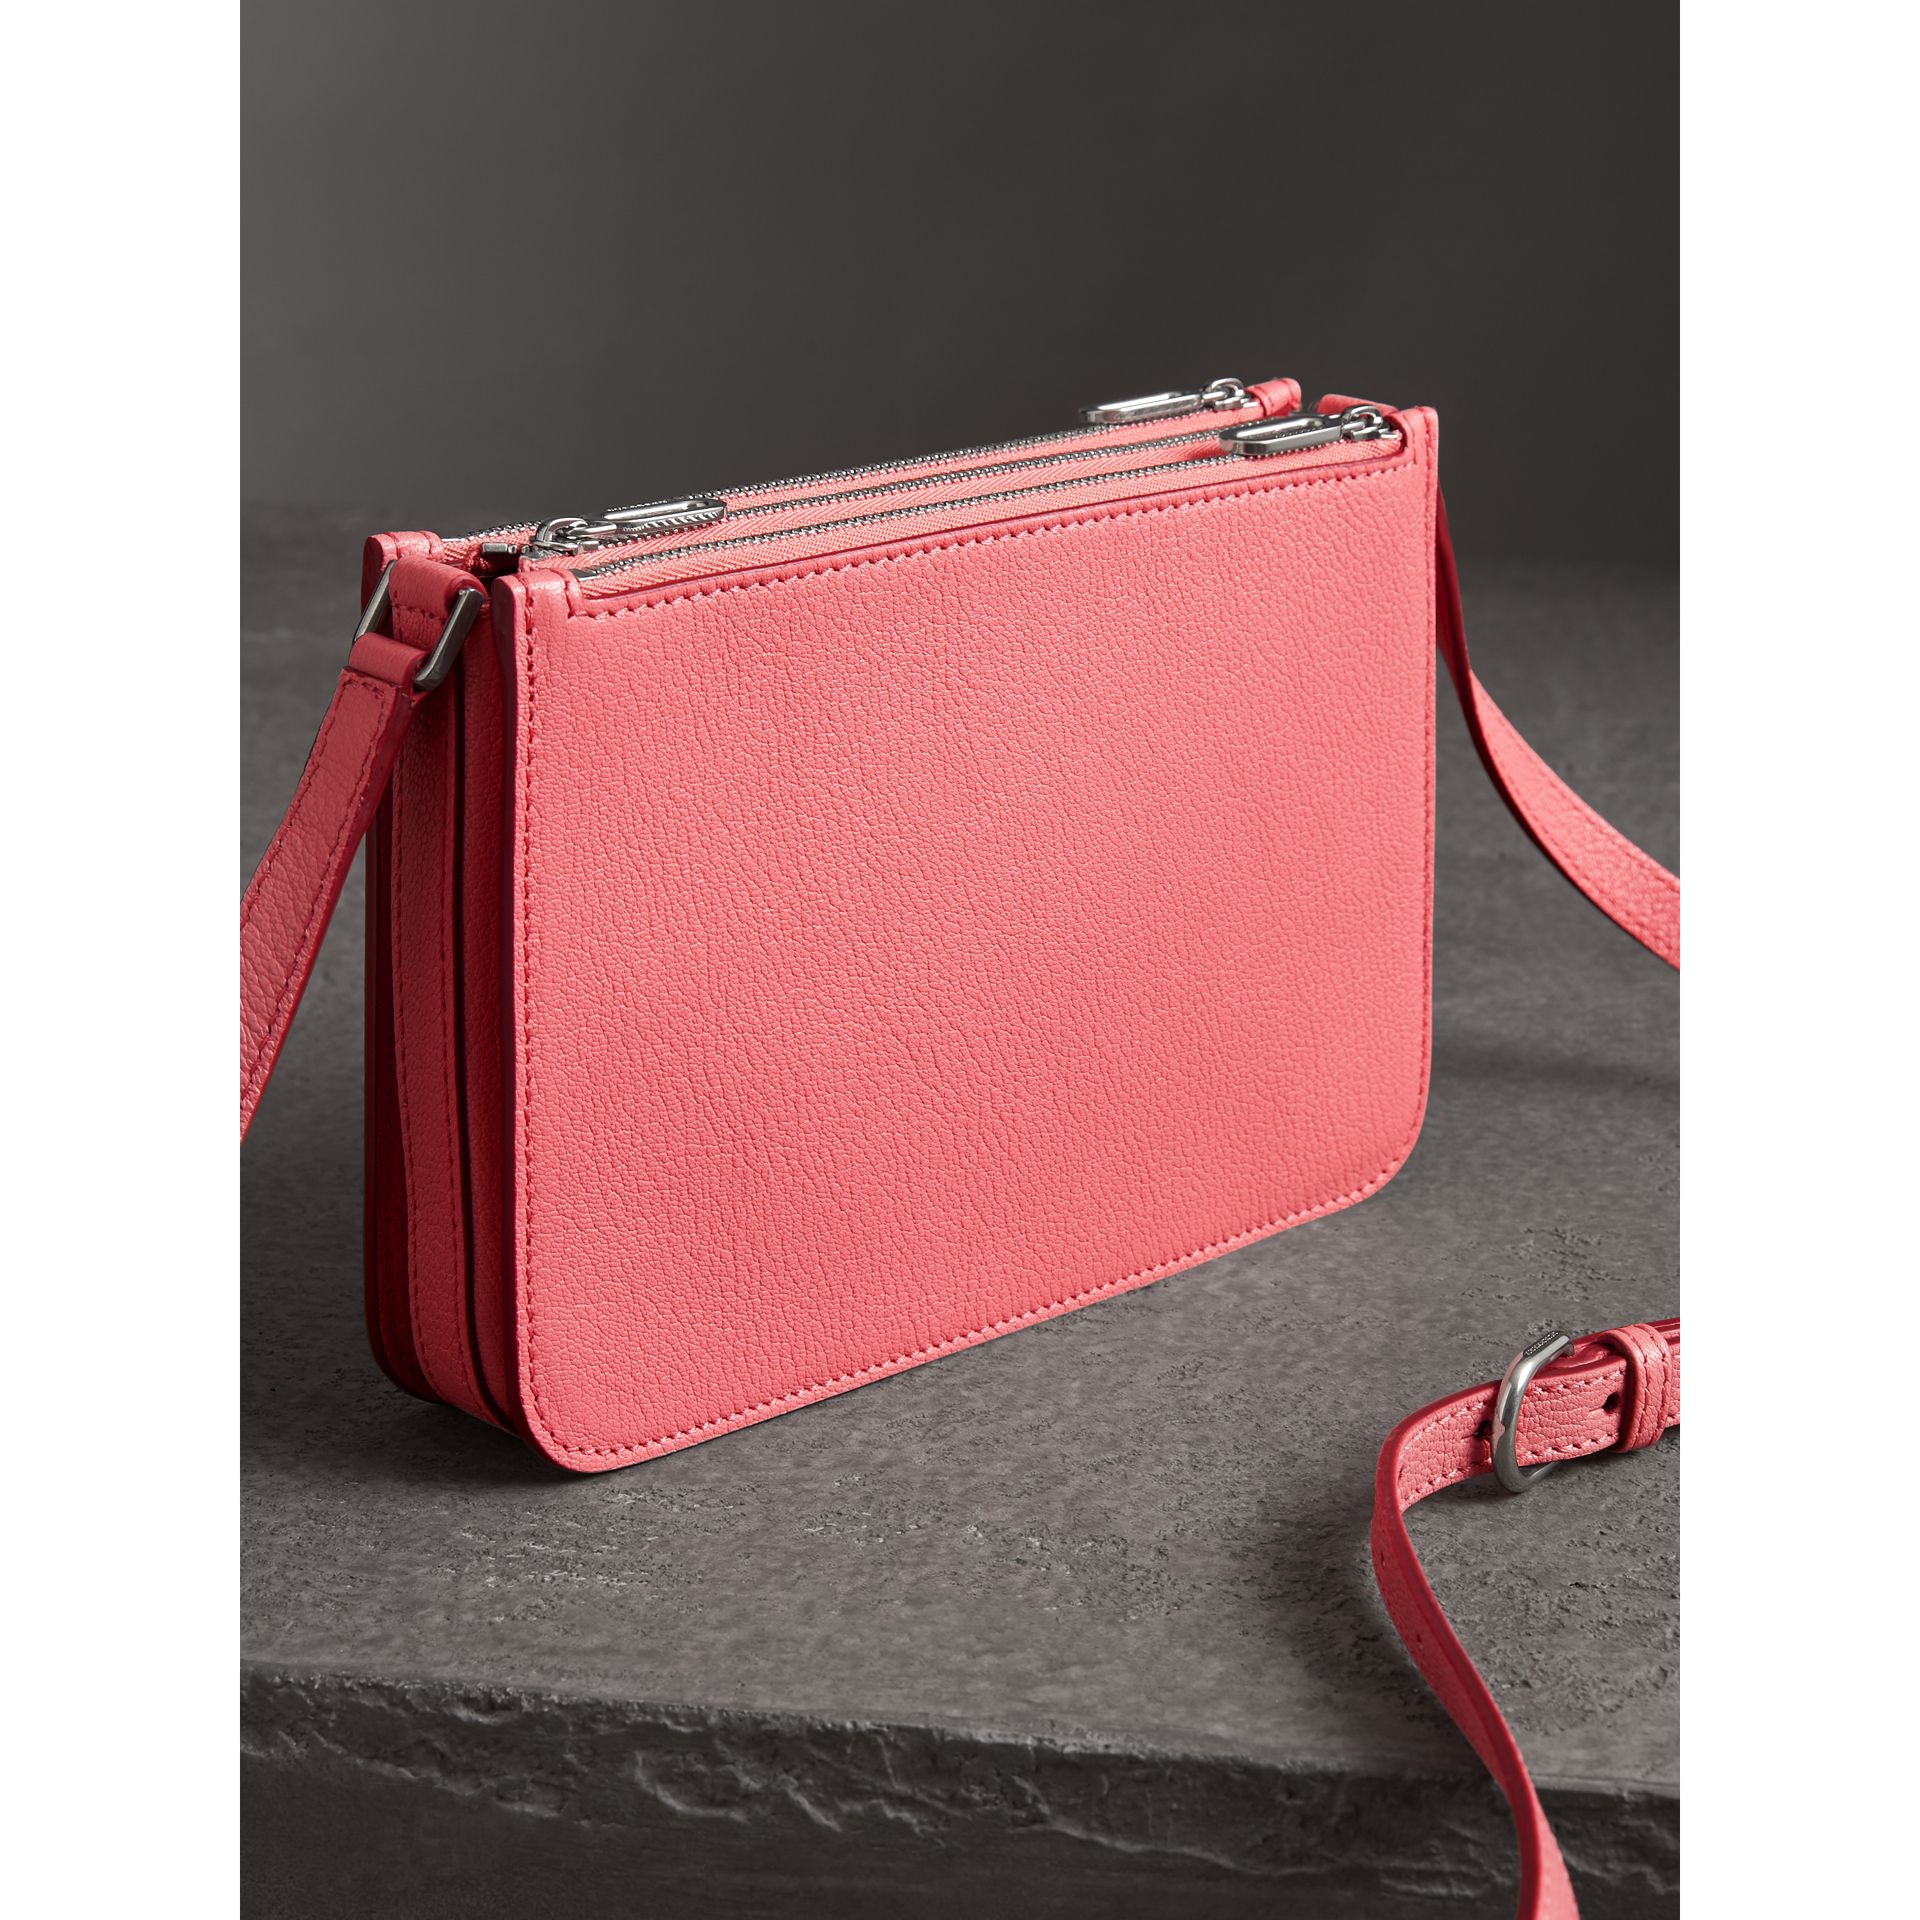 Triple Zip Grainy Leather Crossbody Bag in Bright Coral Pink - Women | Burberry - gallery image 2